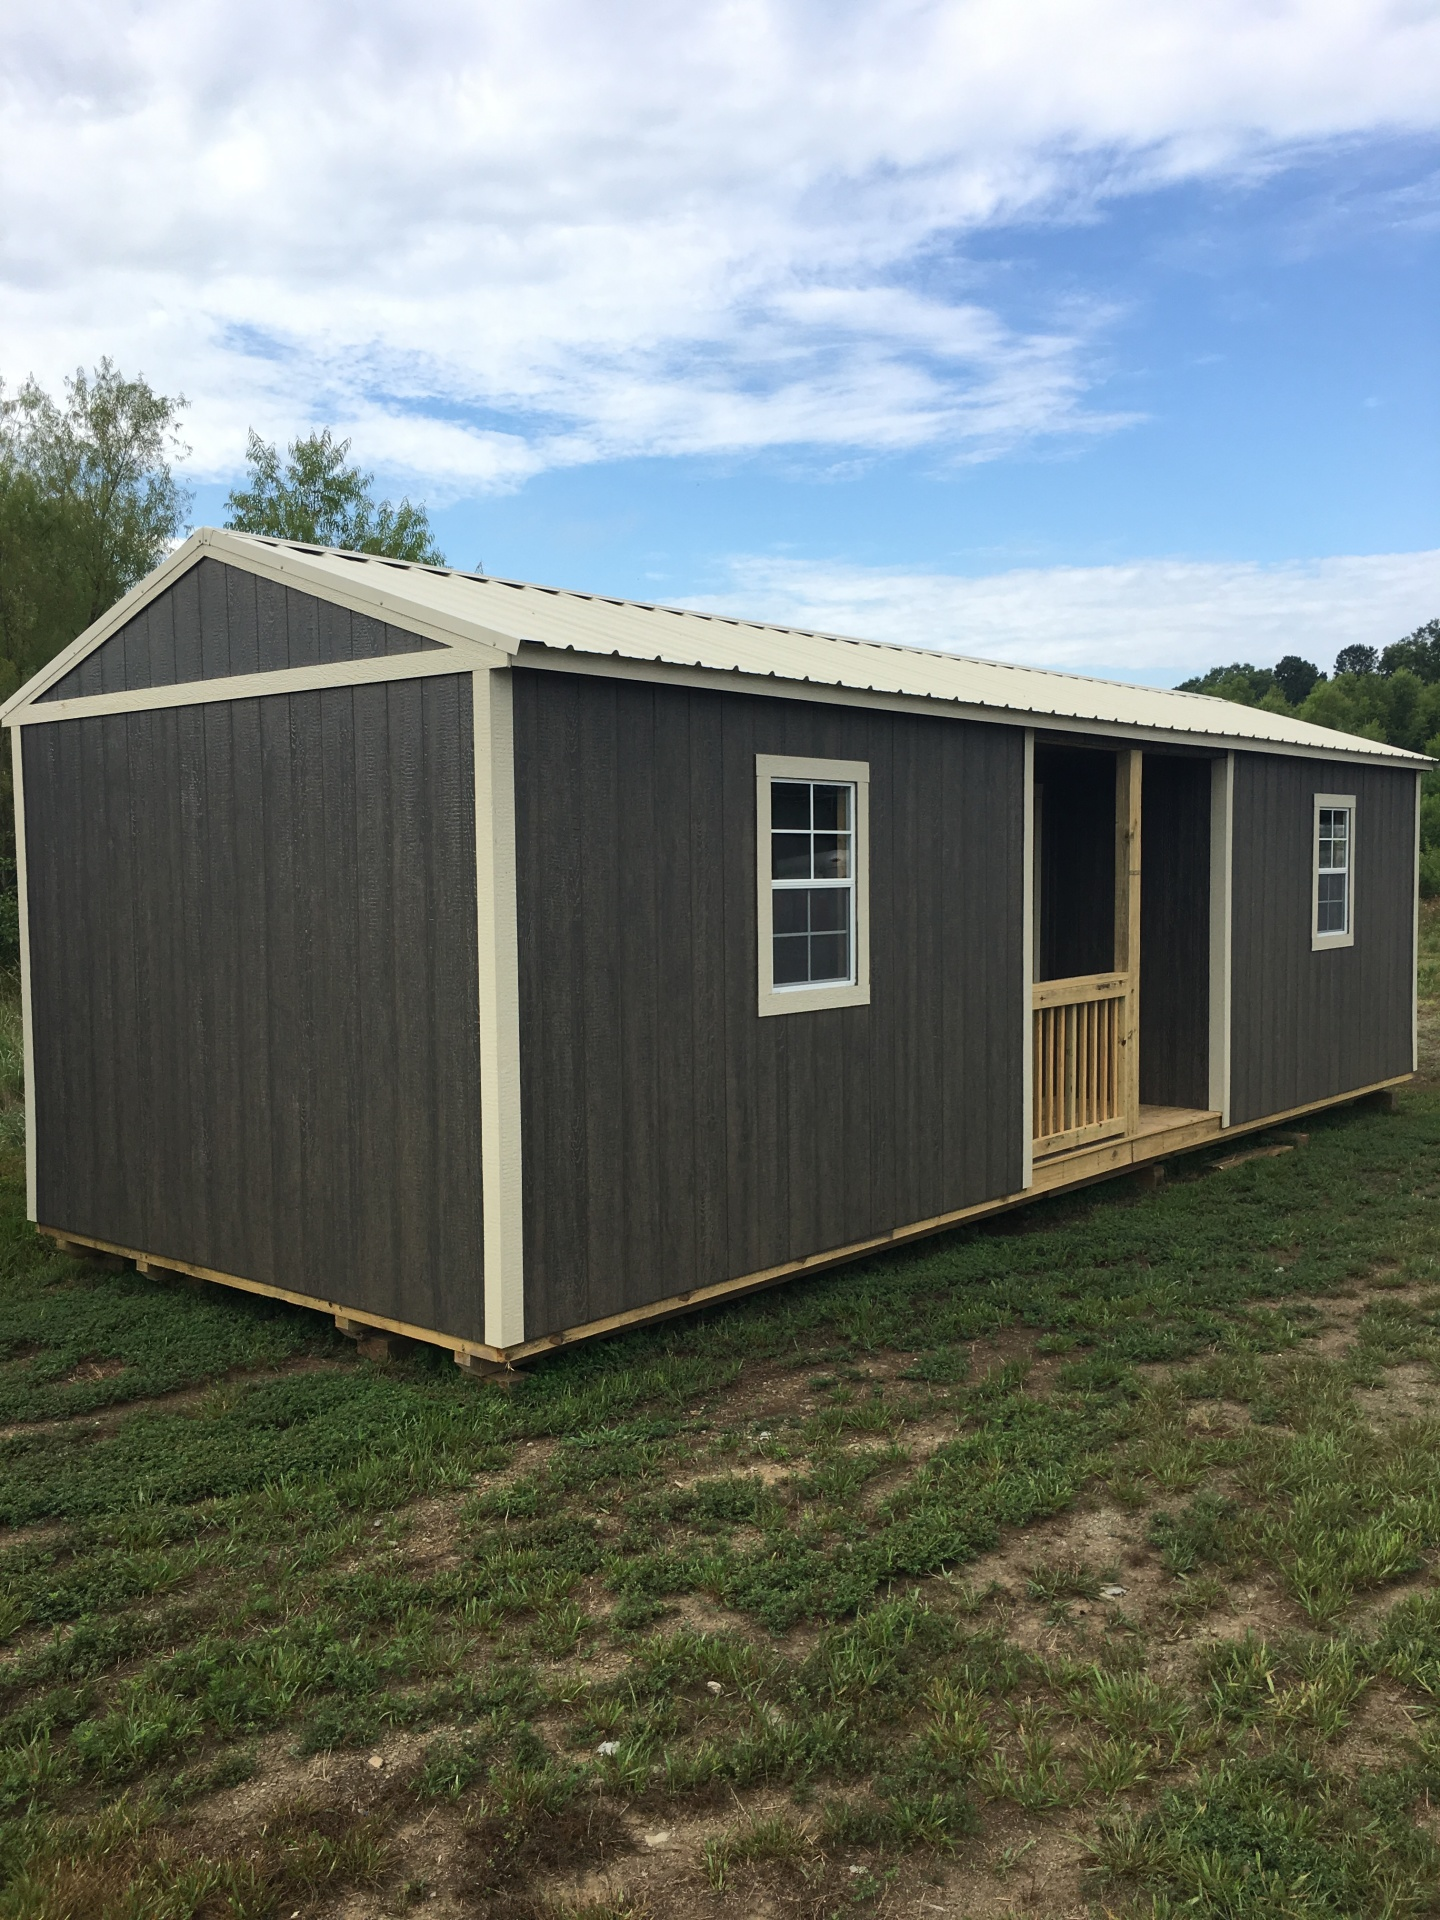 tiny home, office, storage, she cave, man cave, portable building, shed